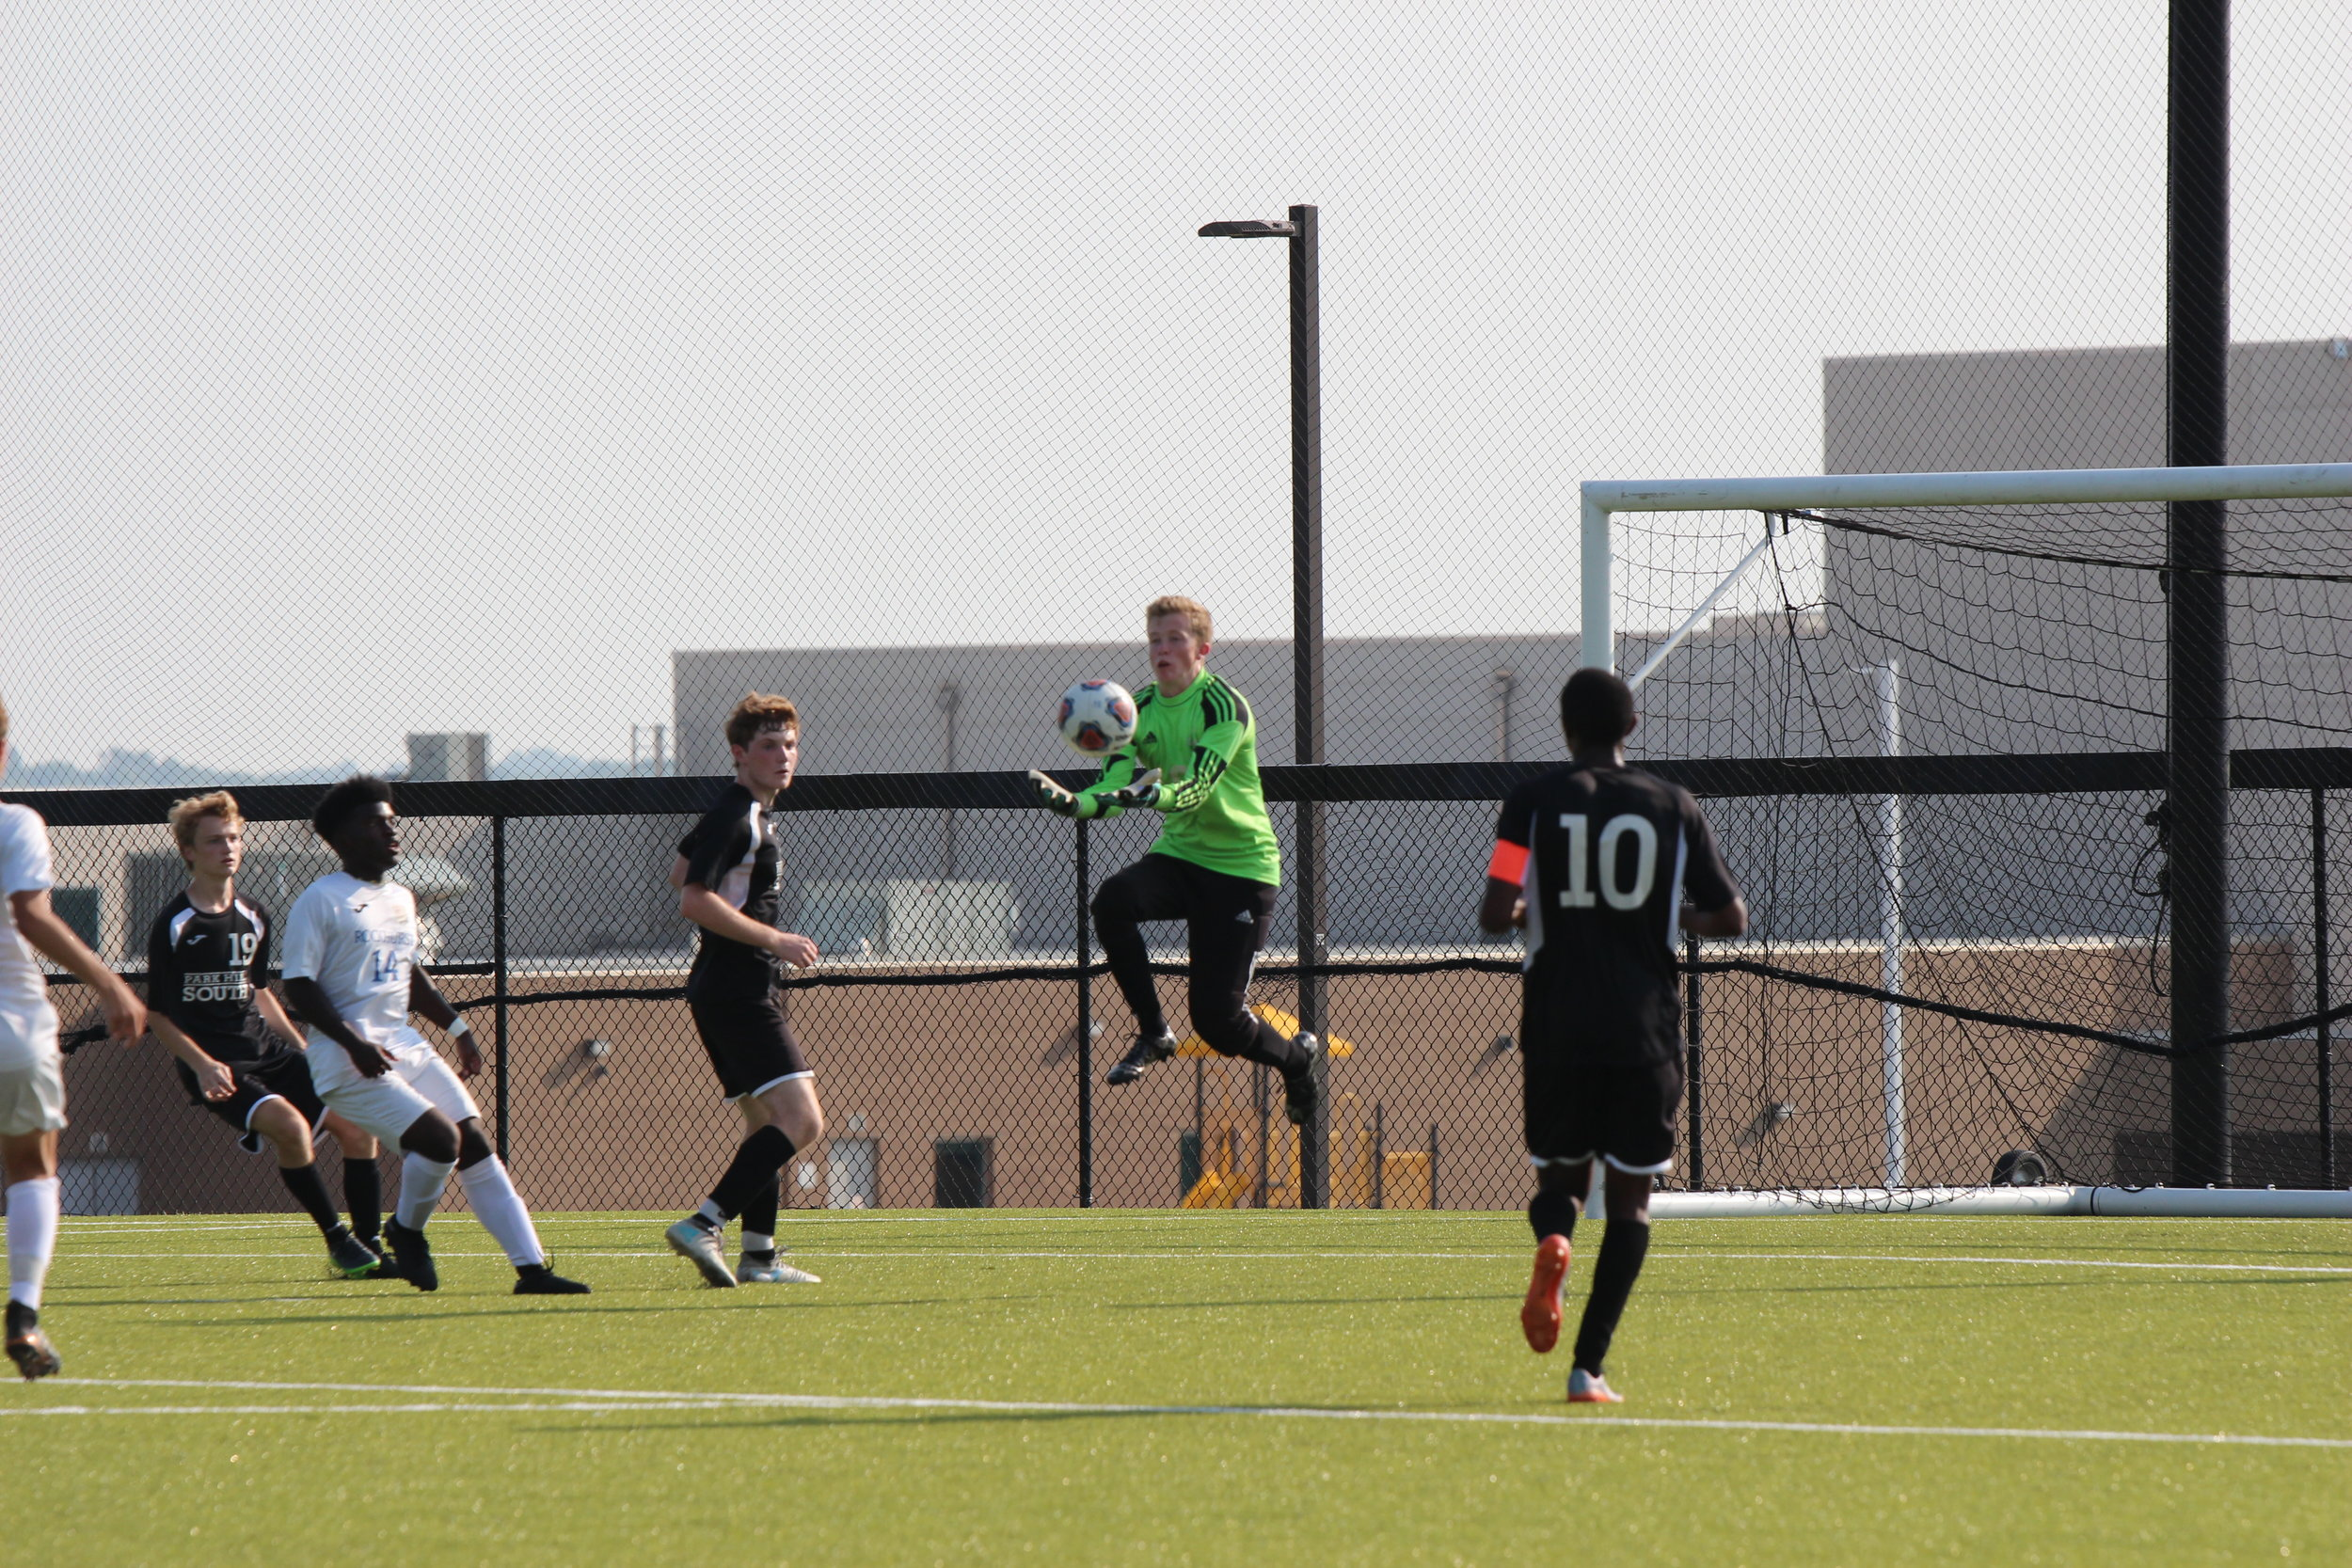 CODY THORN/Citizen photo Park Hill South goalkeeper Cade Meeks jumps in the air to make a save against Rockhurst on Friday, Aug. 24 at the Park Hill School District Soccer Complex in Riverside, Mo. Park Hill South won the game, 1-0.